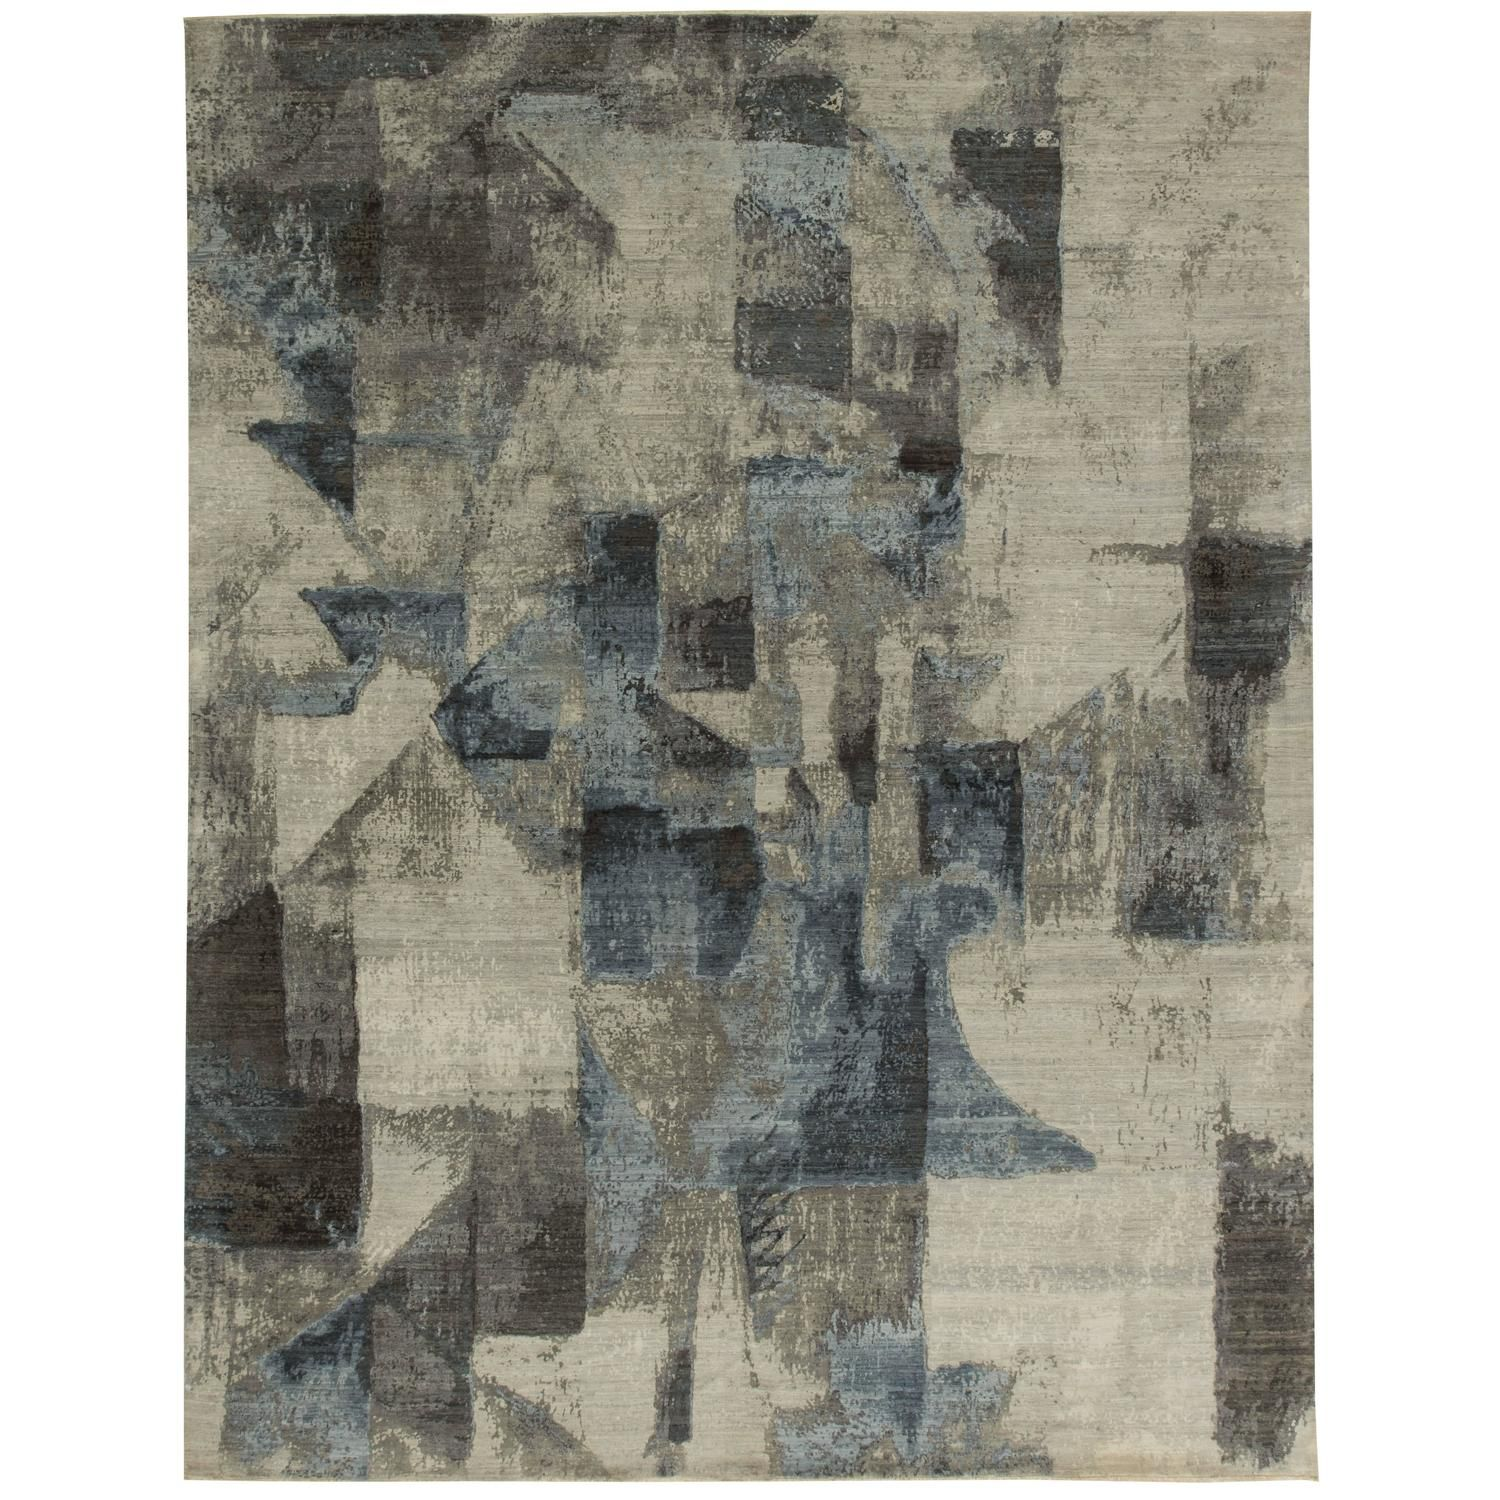 Deco Design Rug | See more antique and modern Chinese and East Asian Rugs at https://www.1stdibs.com/furniture/rugs-carpets/chinese-rugs